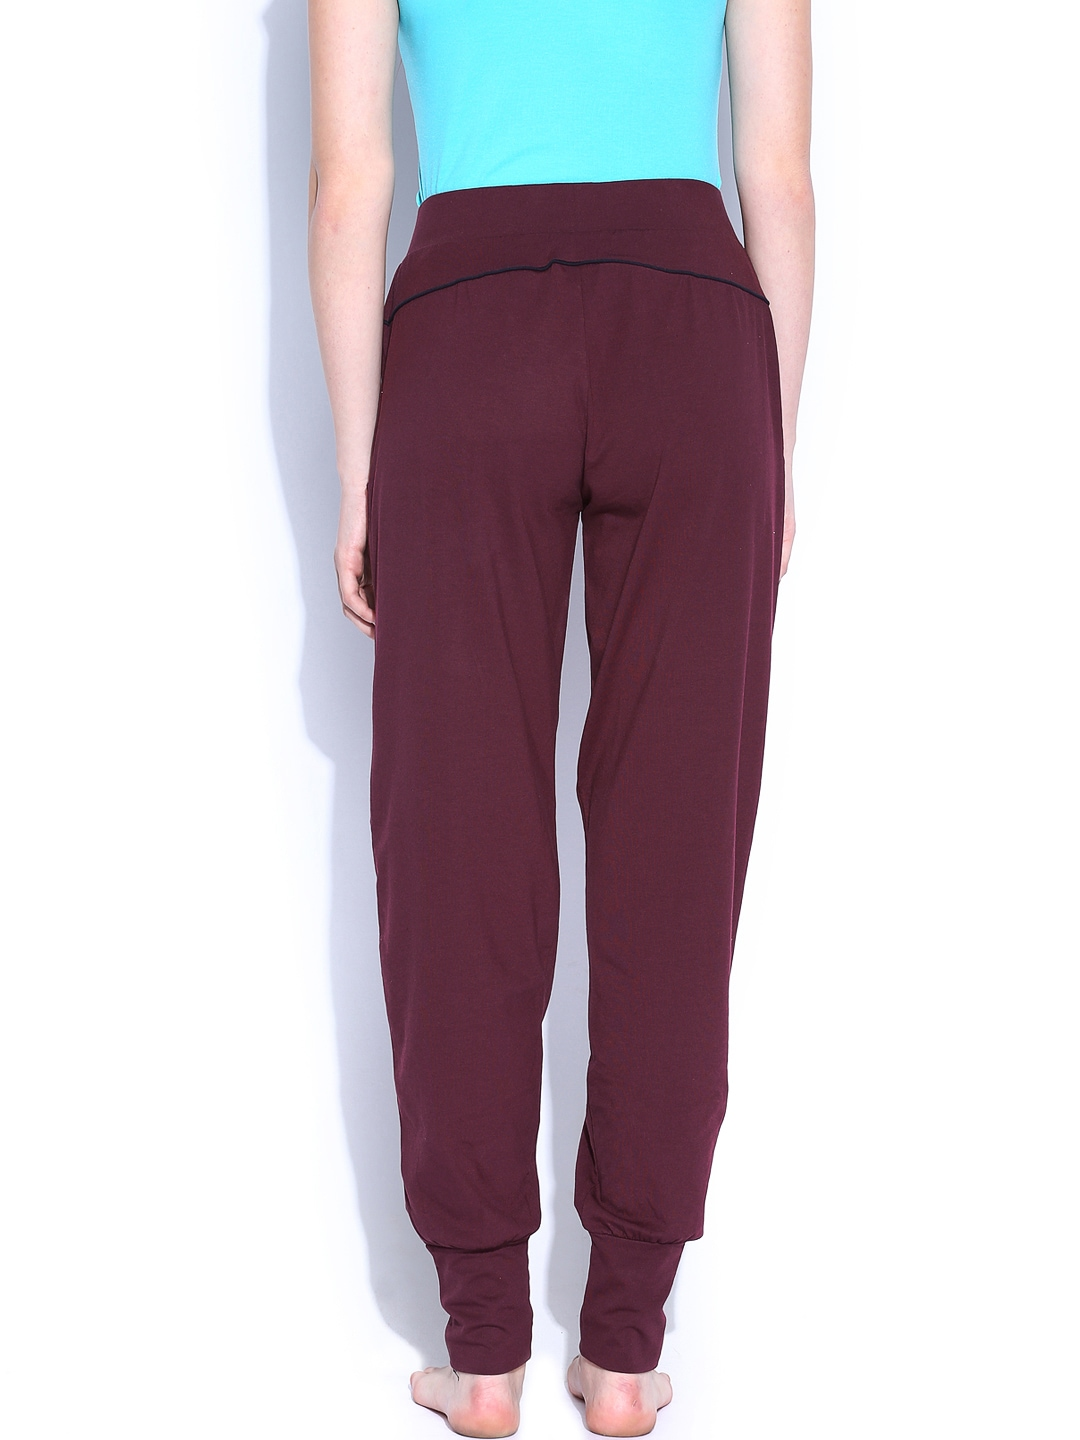 Unique Burgundy Capoeira Pants For Women  CapoeiraWorldcom